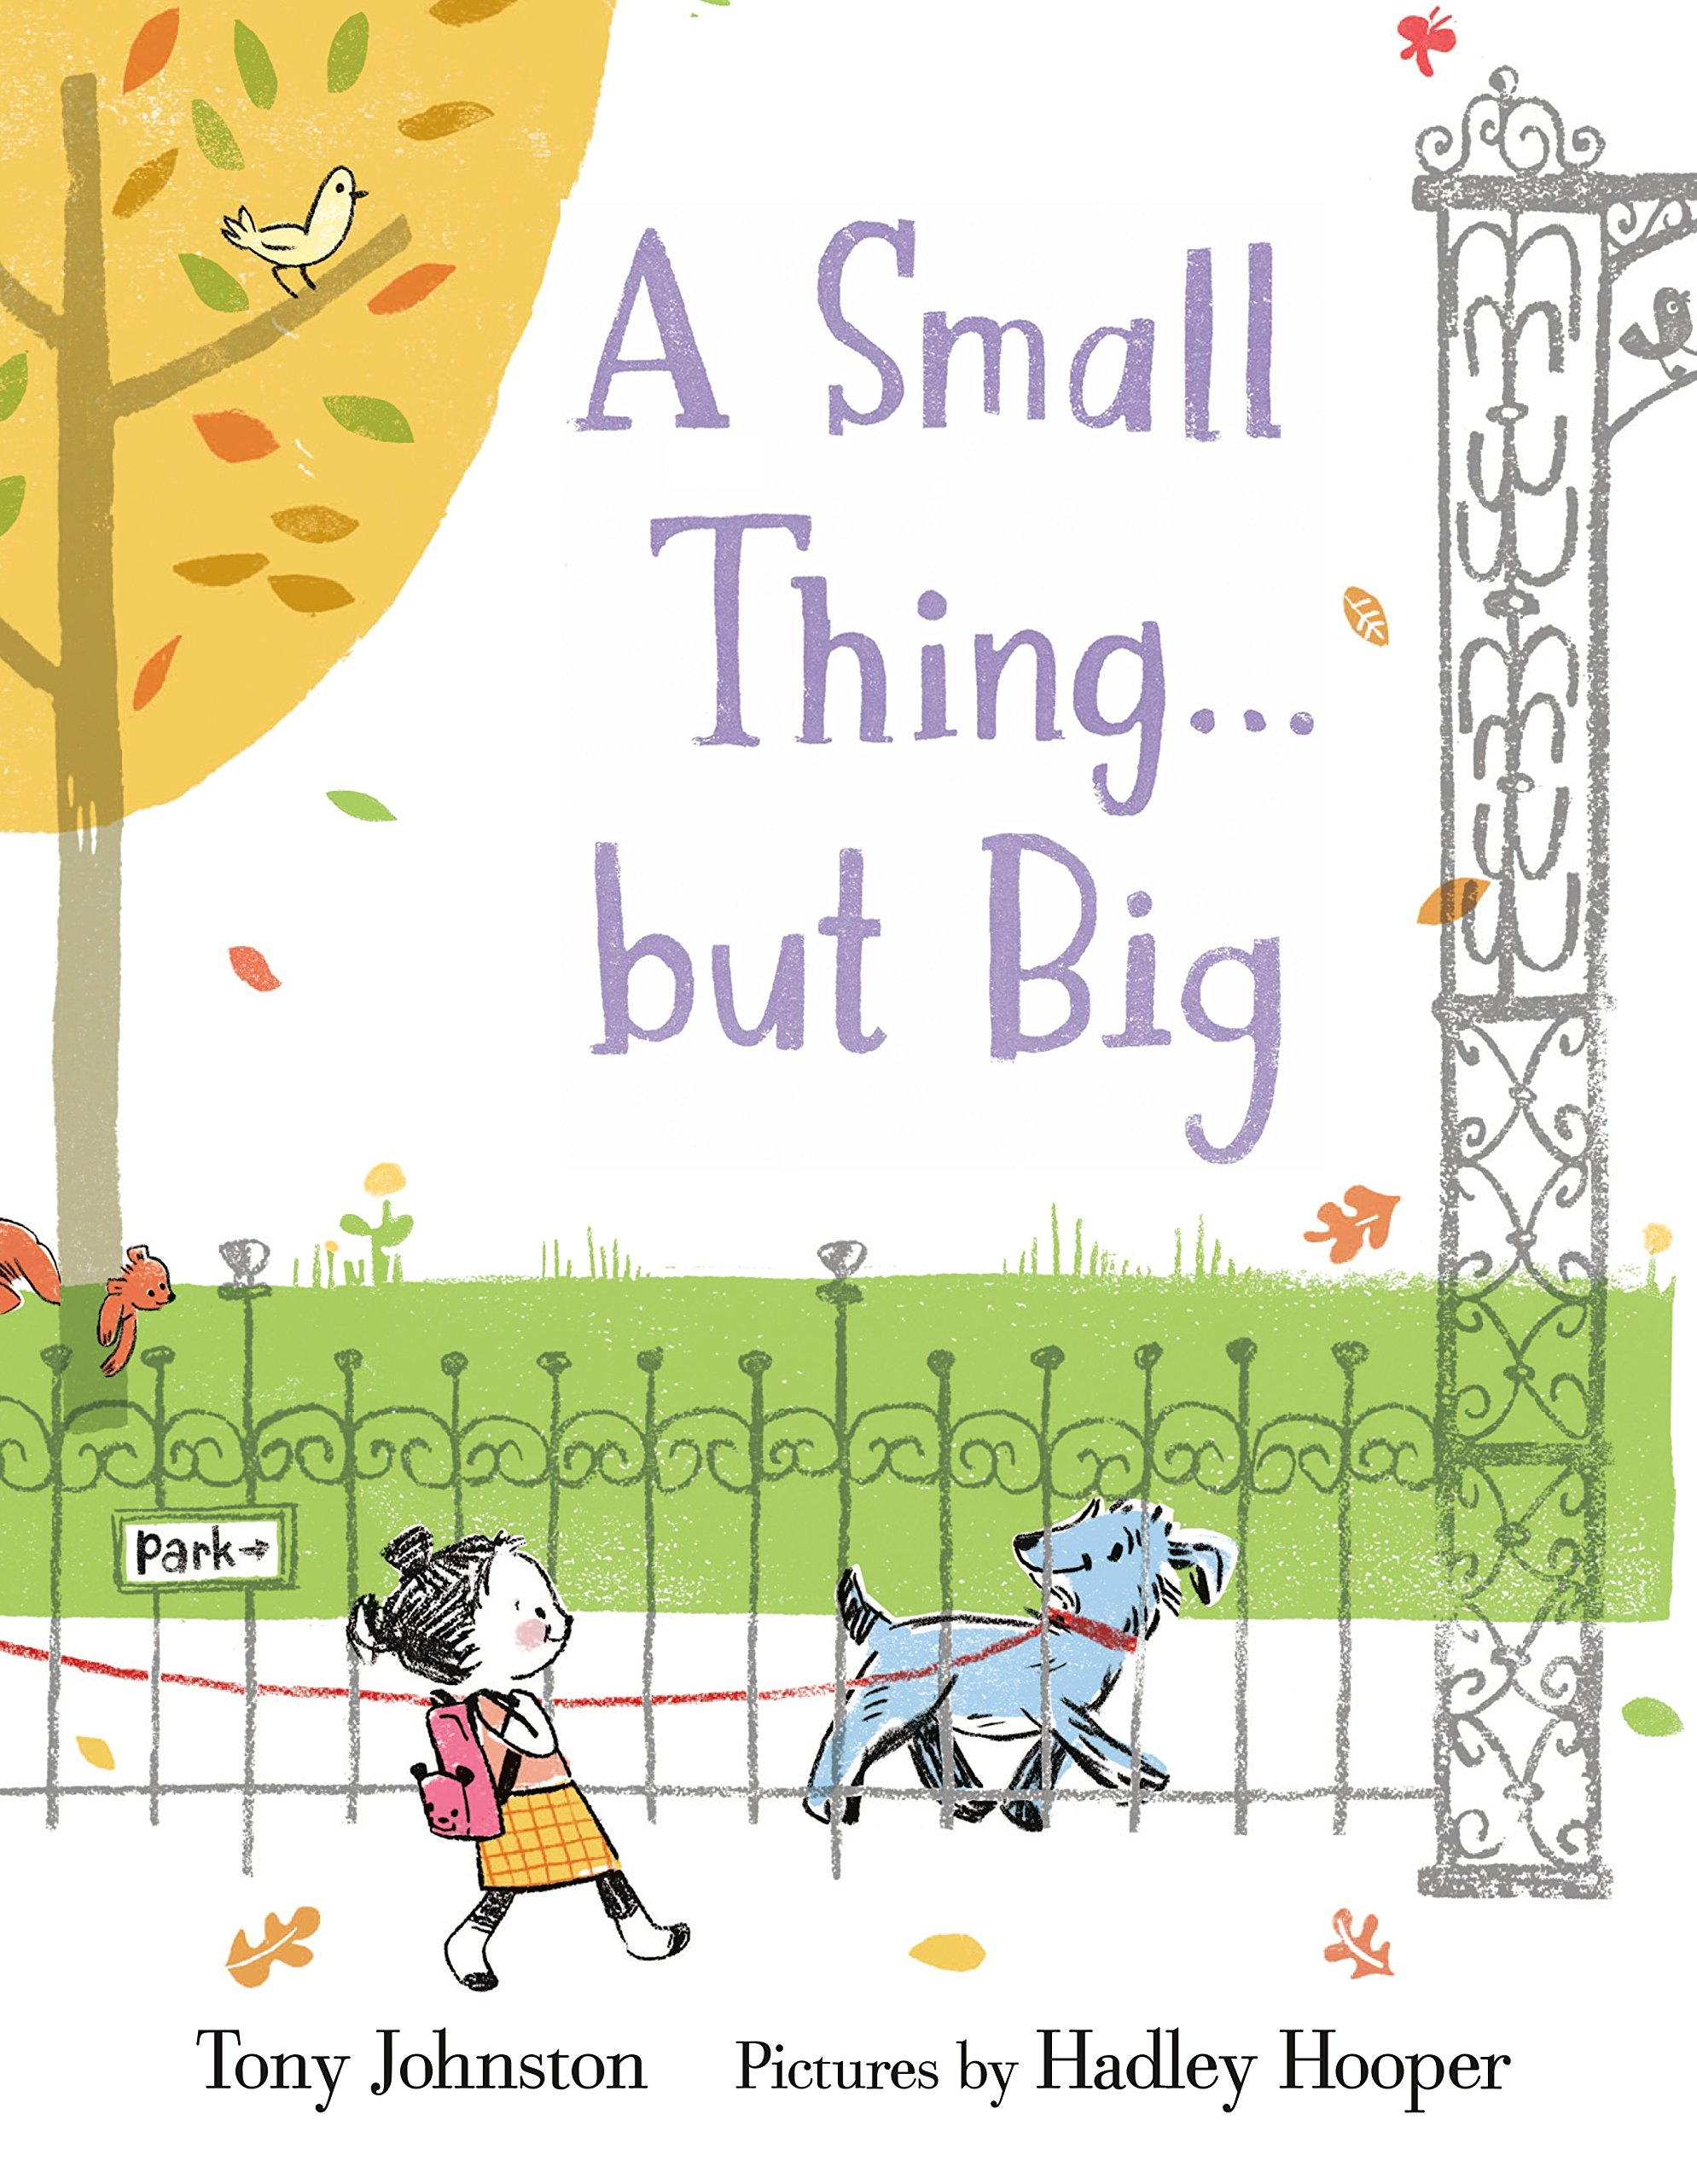 Small Thing . . . but Big by Tony Johnston, illustrated by Hadley Hooper